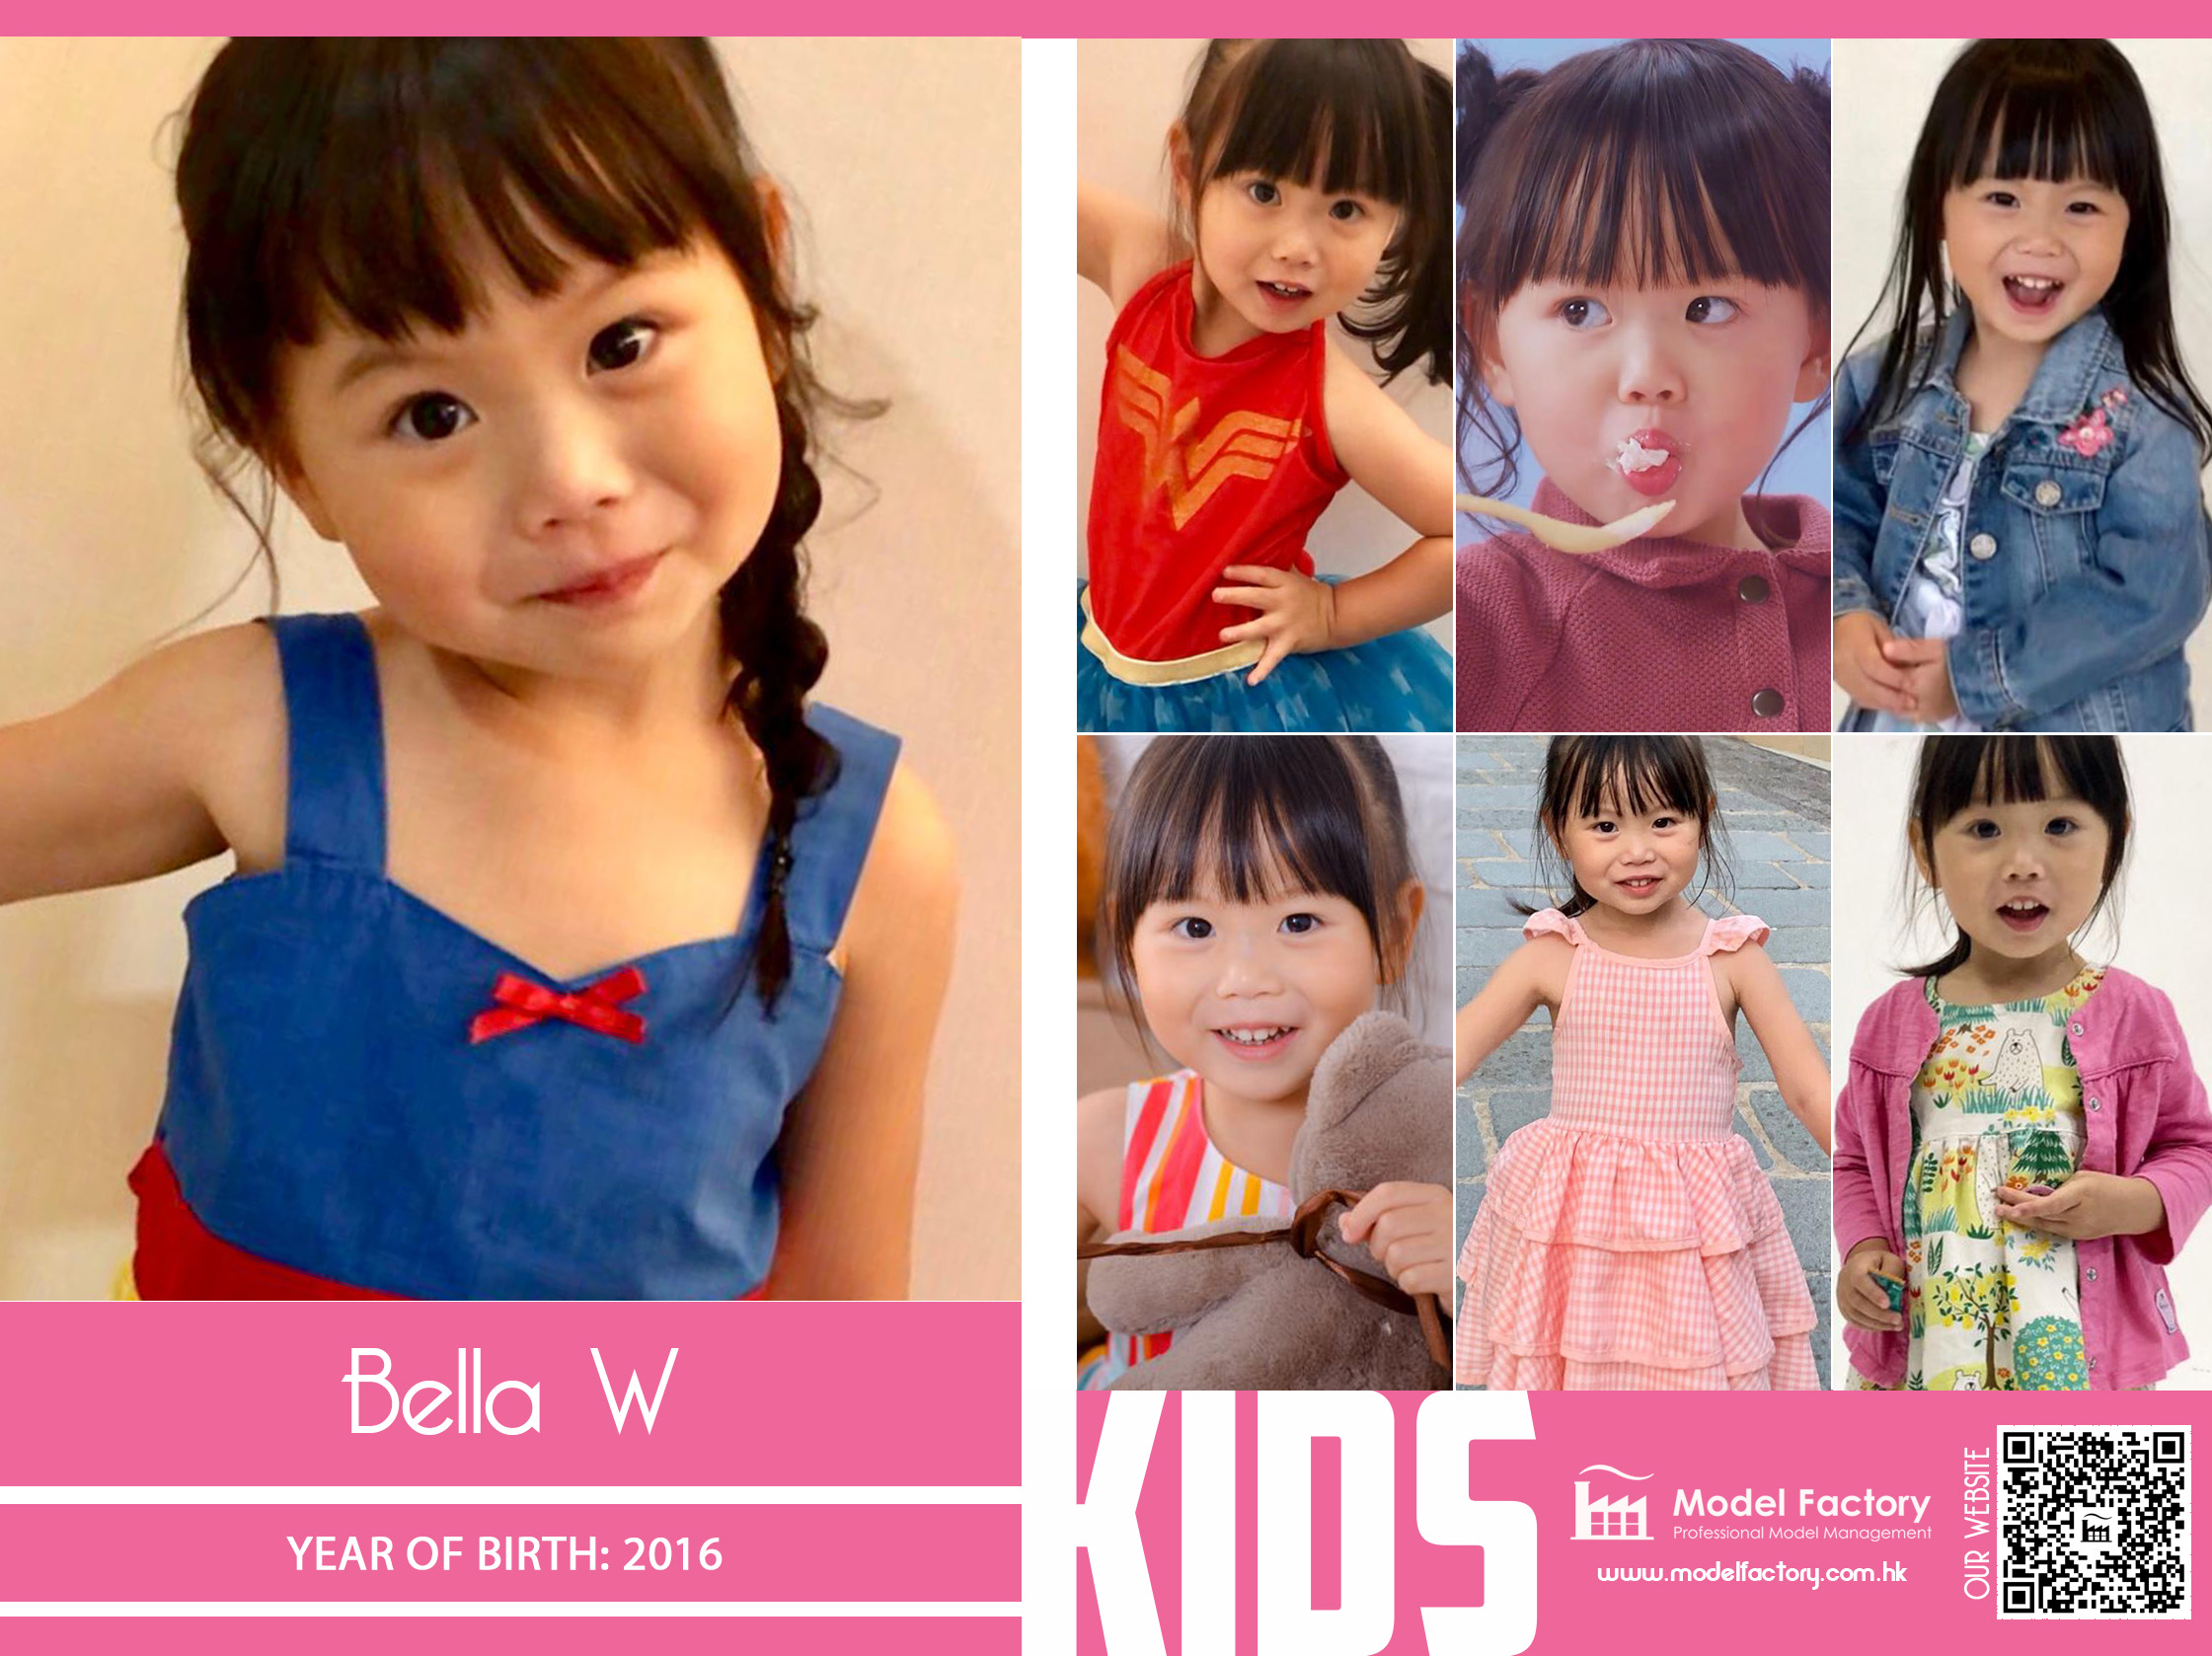 Model Factory Mix Kids Model Bella W